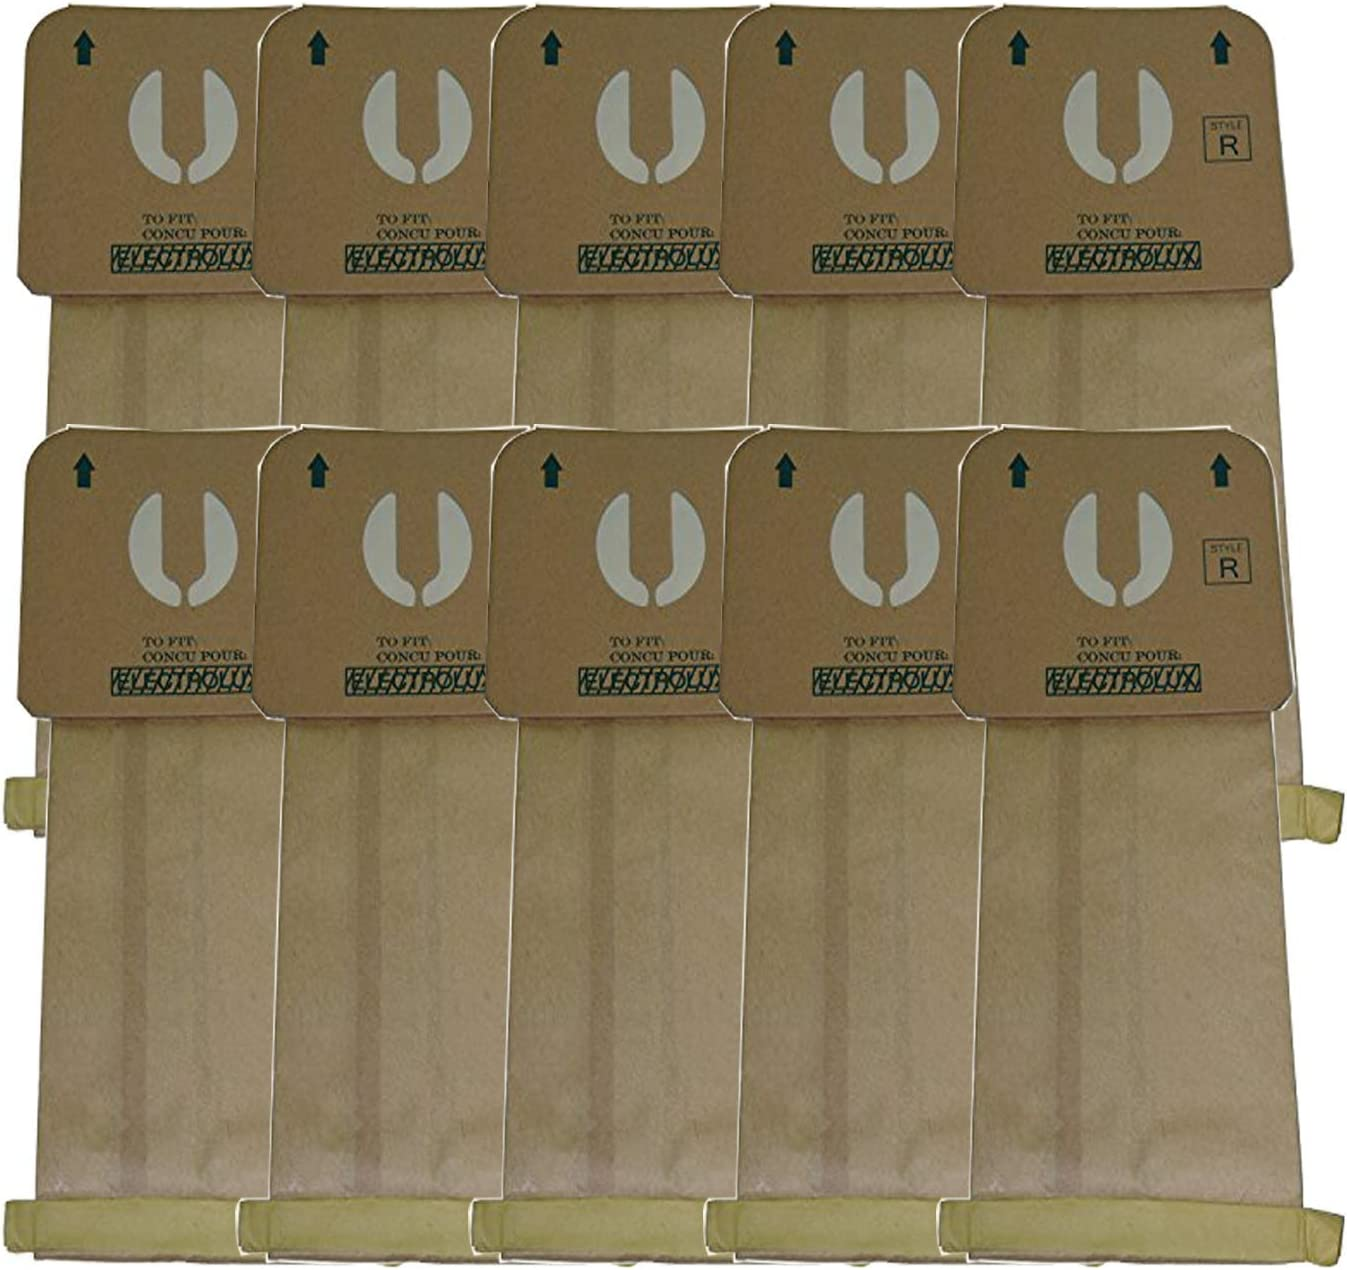 Electrolux Renaissance MicroFiltration Style R Premium Vacuum Bags; Fits Electrolux Renaissance, Epic 8000, Guardian Series, Also Fits The LUX 9000 Model Vacuum Cleaners, by ZVac (10)